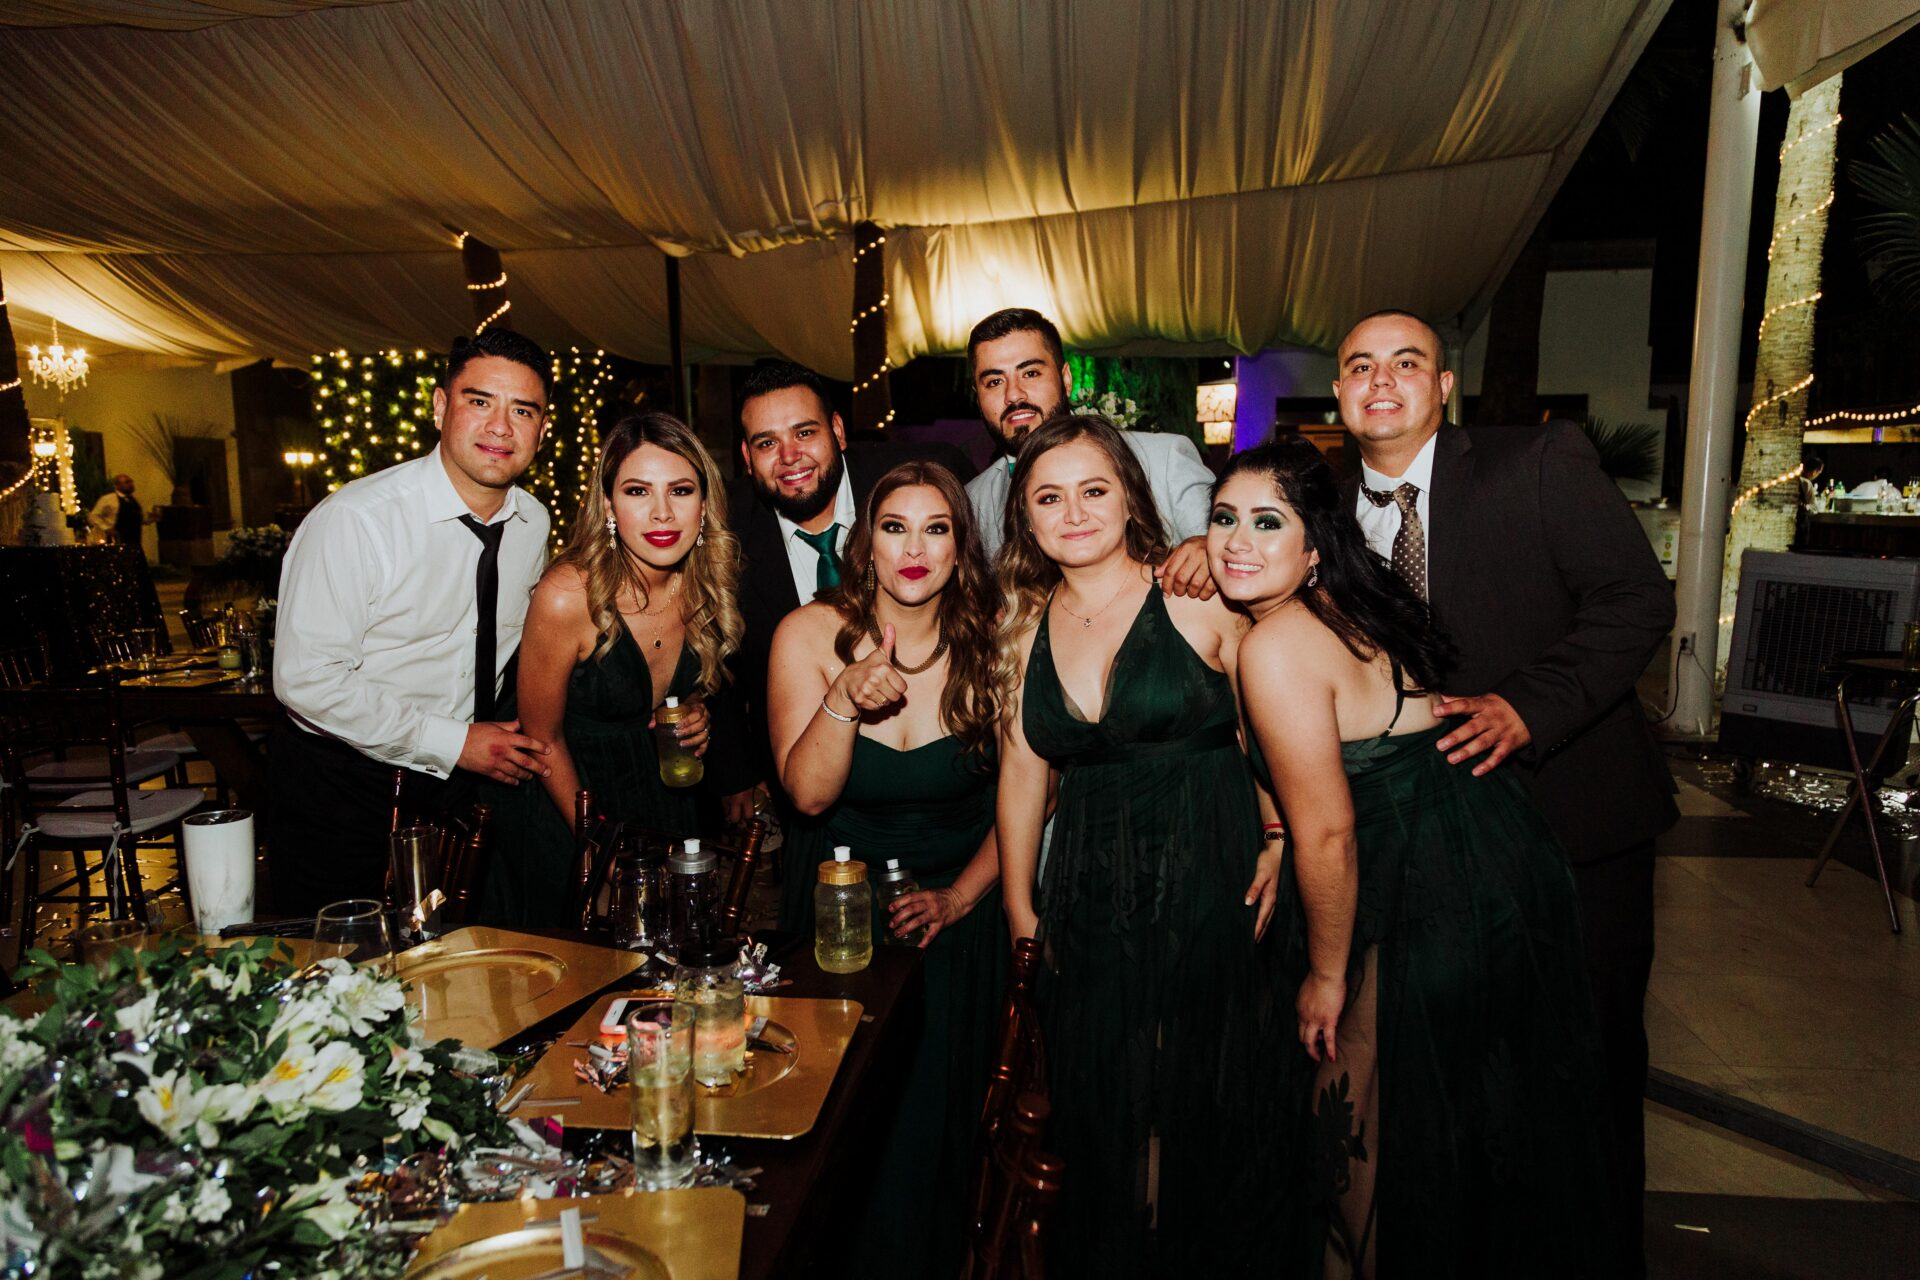 javier_noriega_fotografo_bodas_torreon_coahuila_zacatecas_wedding_photographer59a